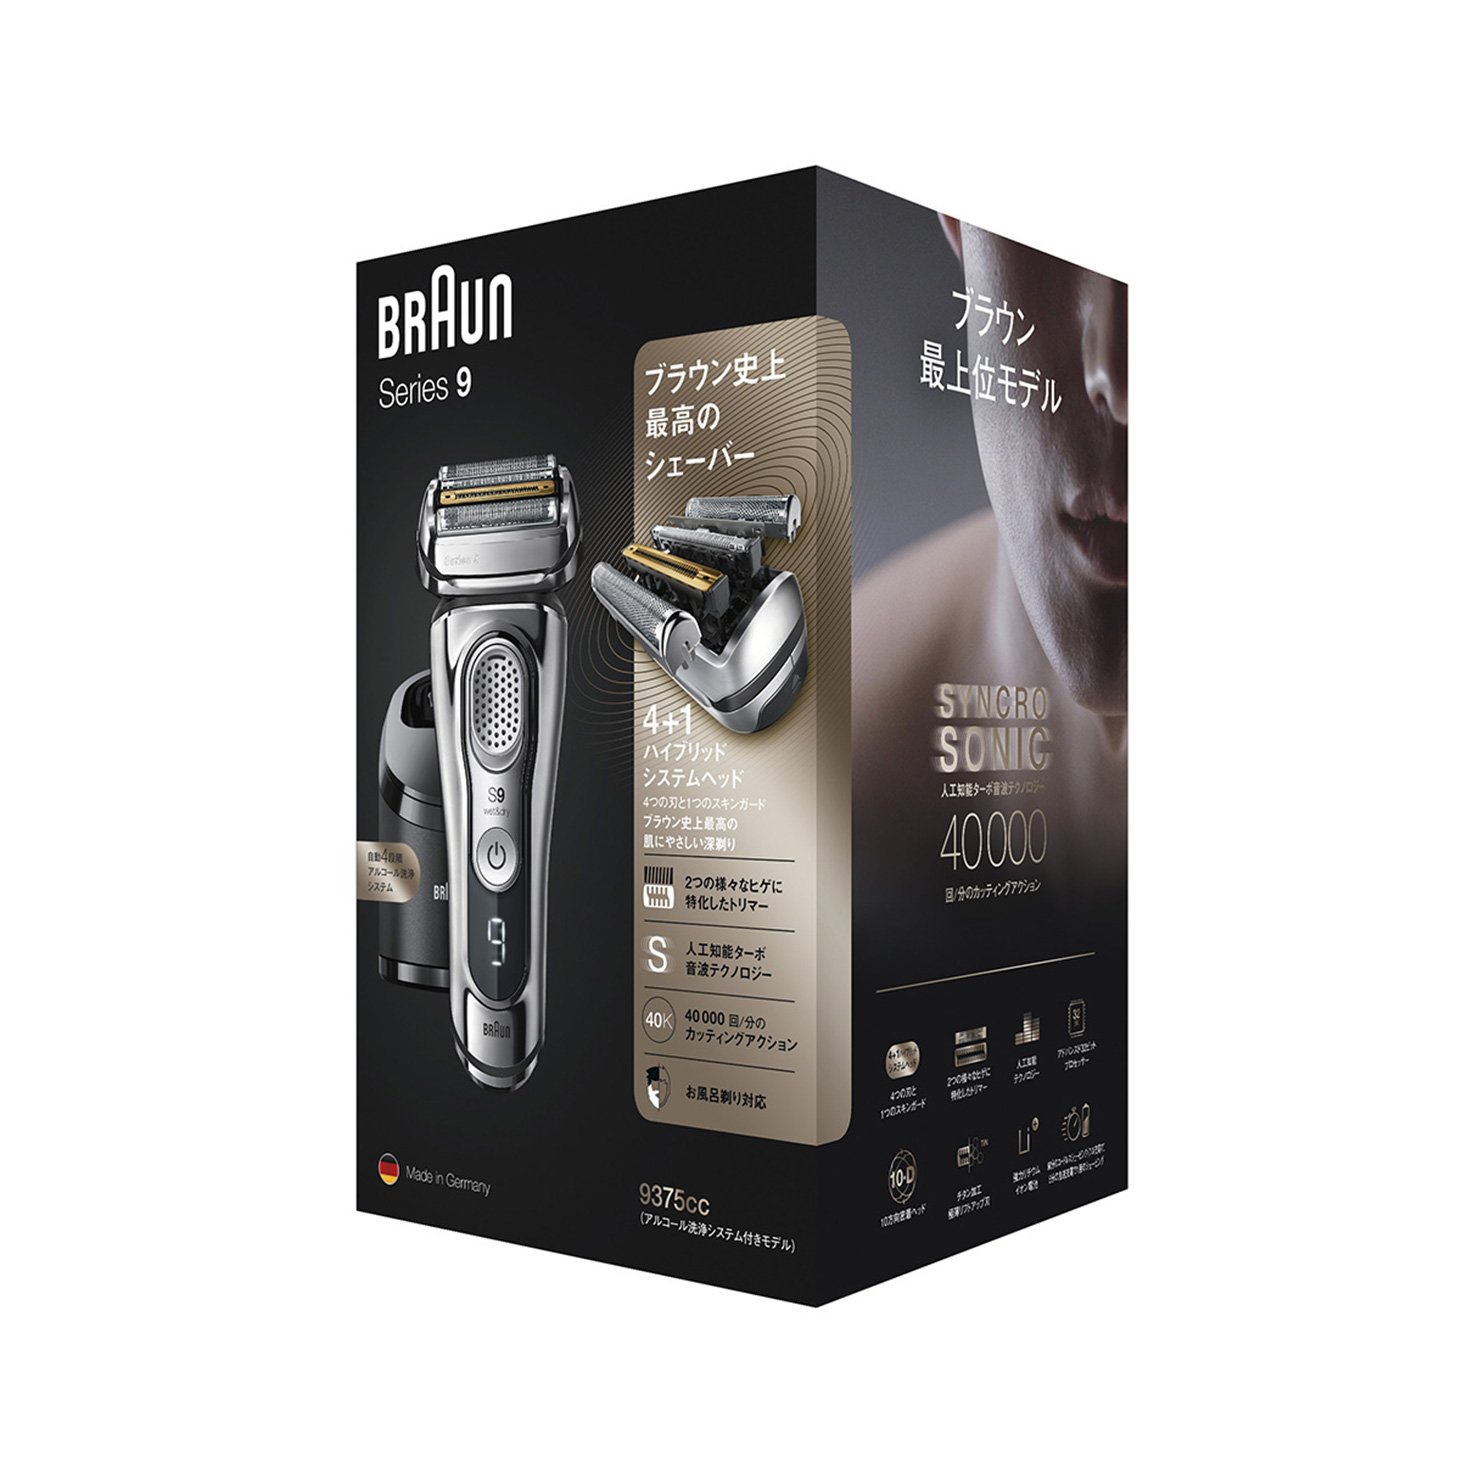 Series 9 9375cc shaver - Packaging